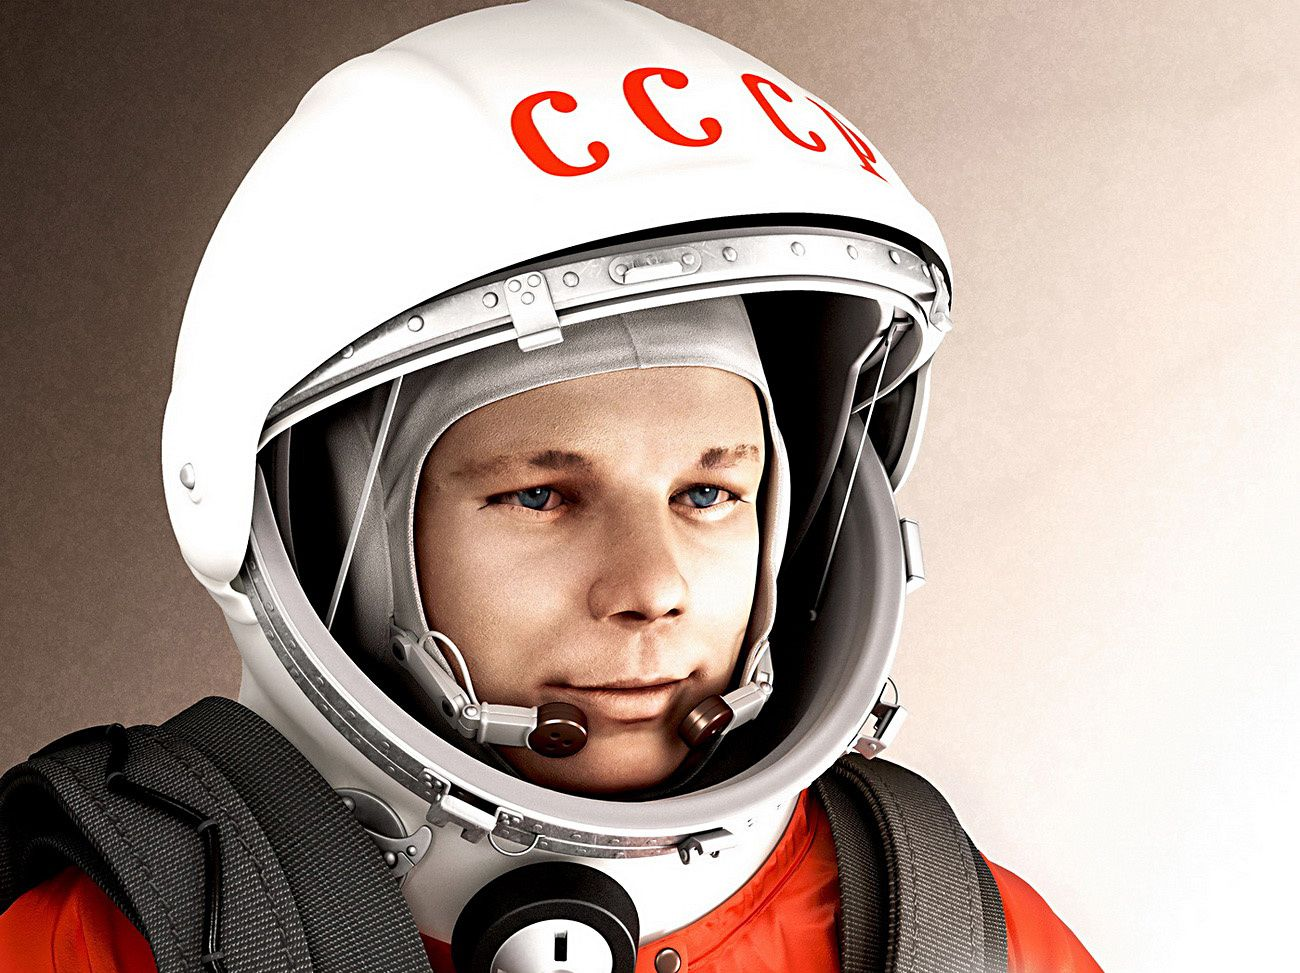 gagarin wallpaper - photo #6